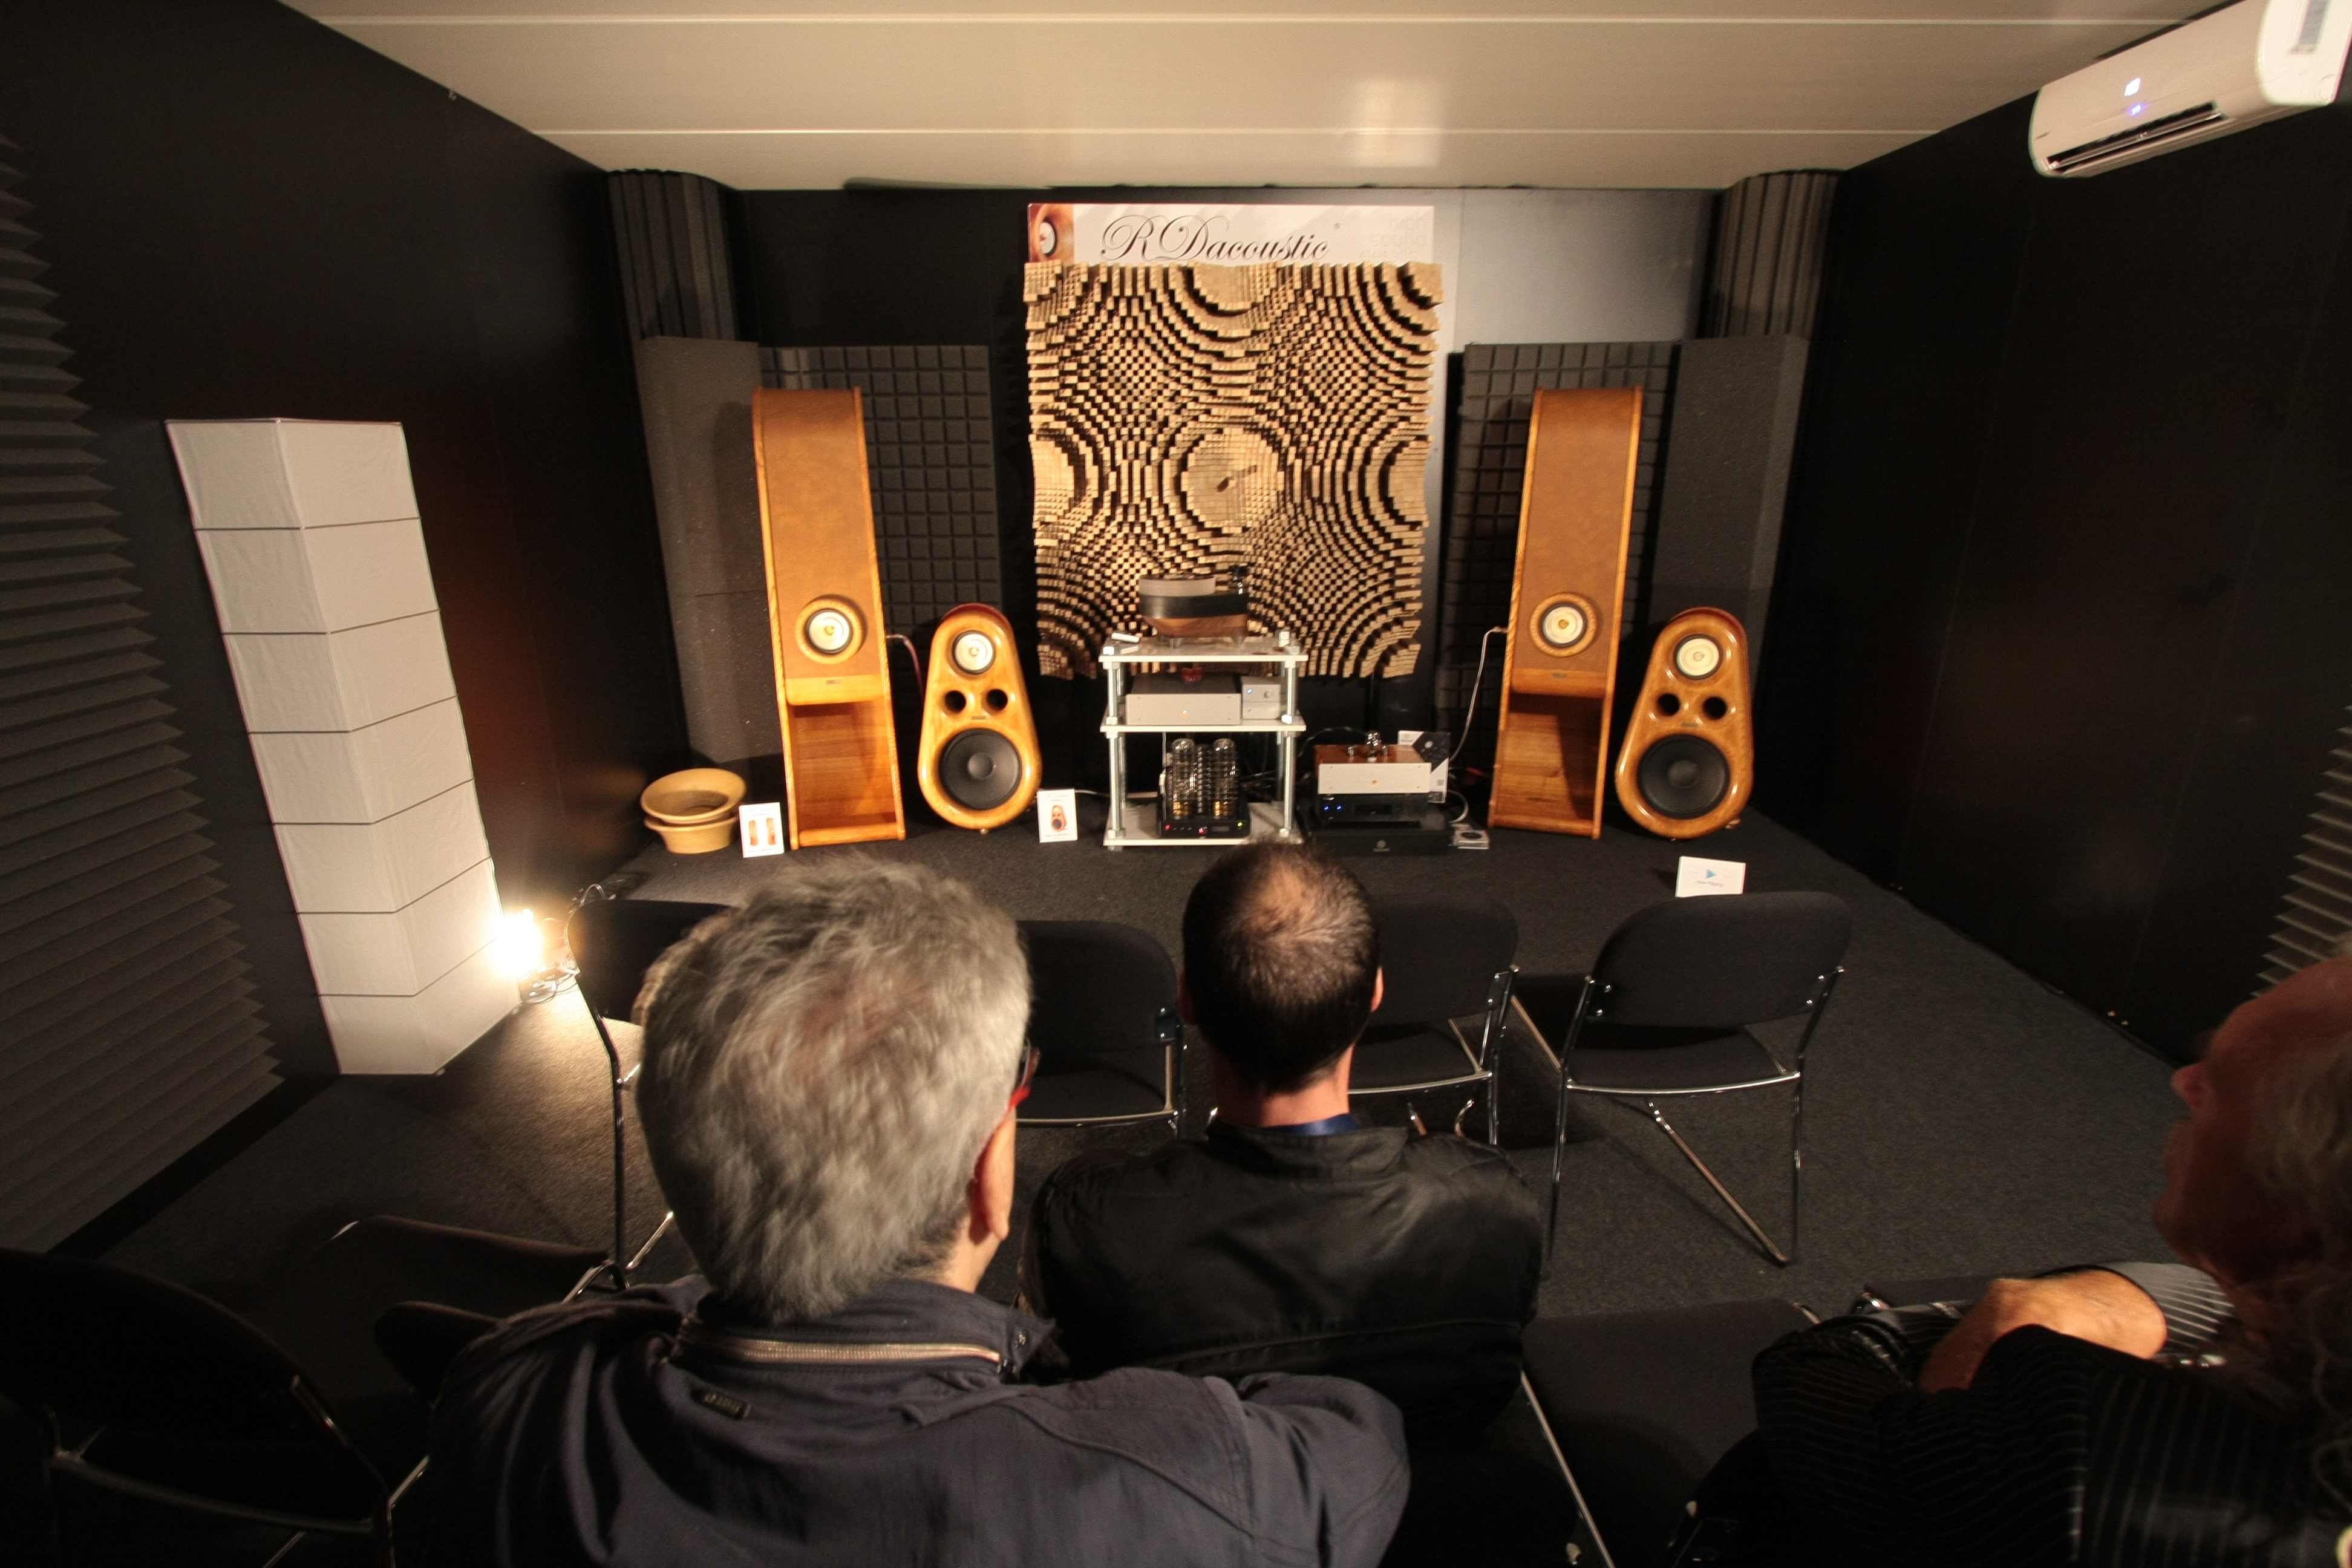 High End speakers Evolution, Euphoria for true HIFI stereo, KR audio, Kronzilla, acoustic Diffuser, HIFI, High End home audio